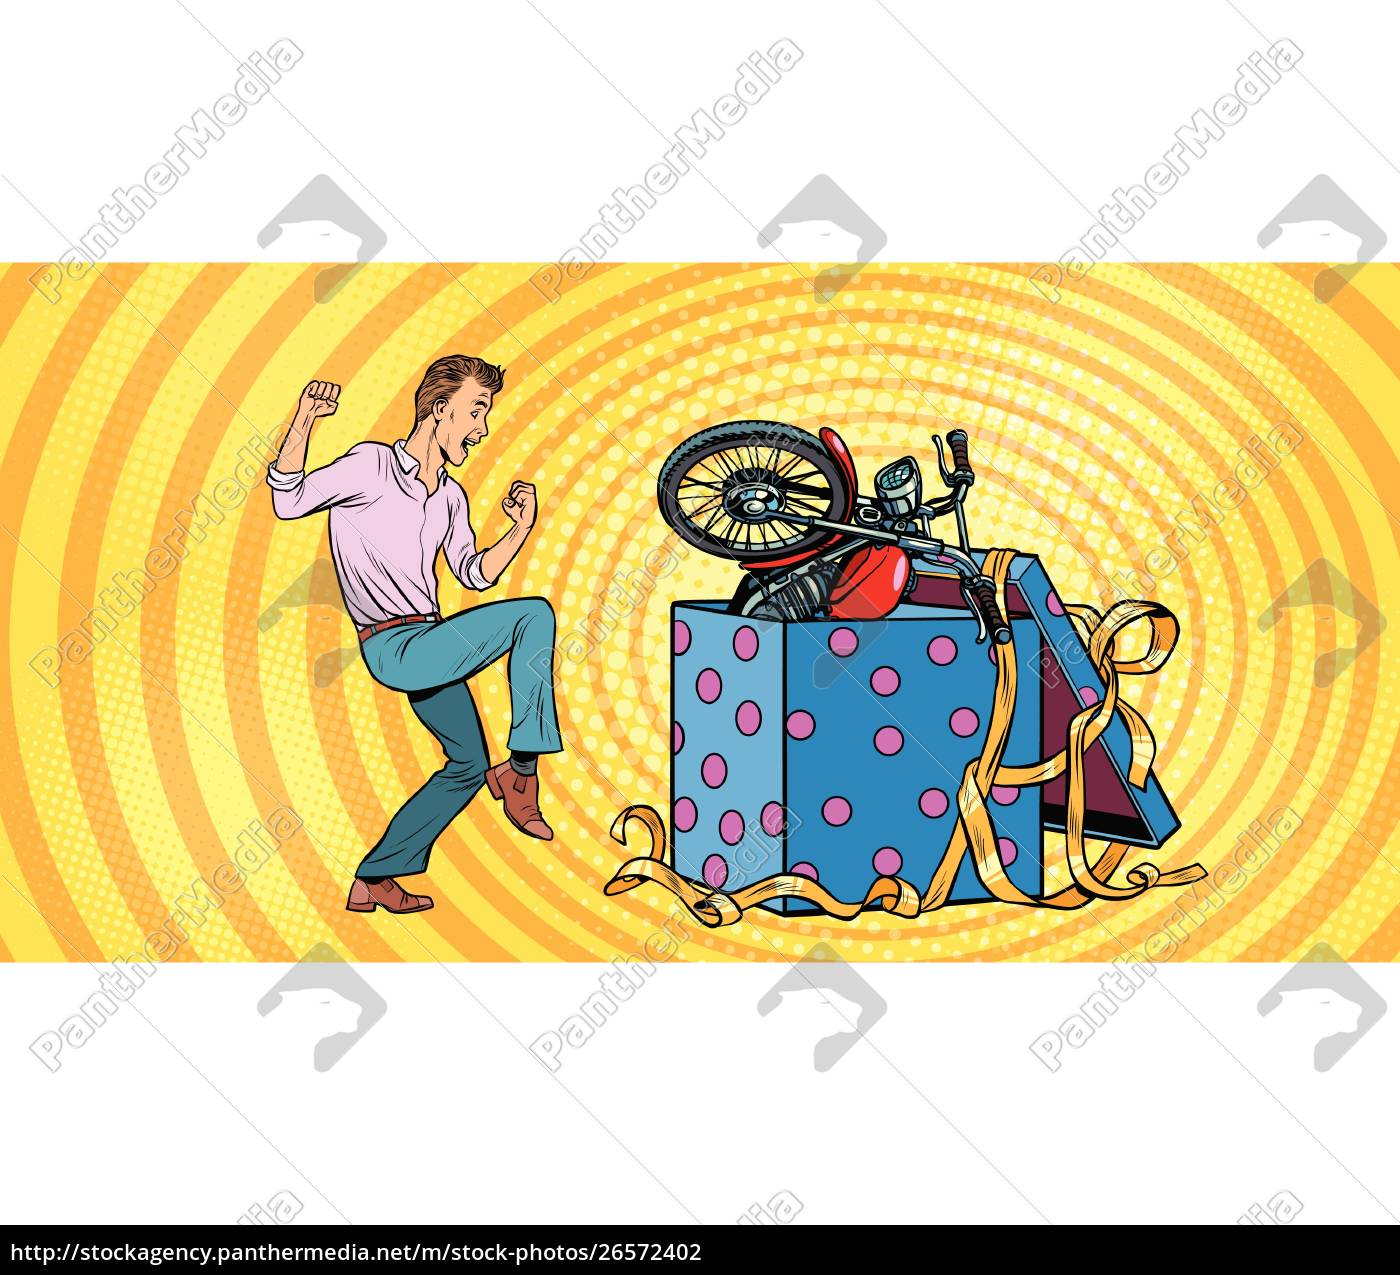 Man And Motorcycle Holiday Gift Box Funny Reaction Stock Image 26572402 Panthermedia Stock Agency